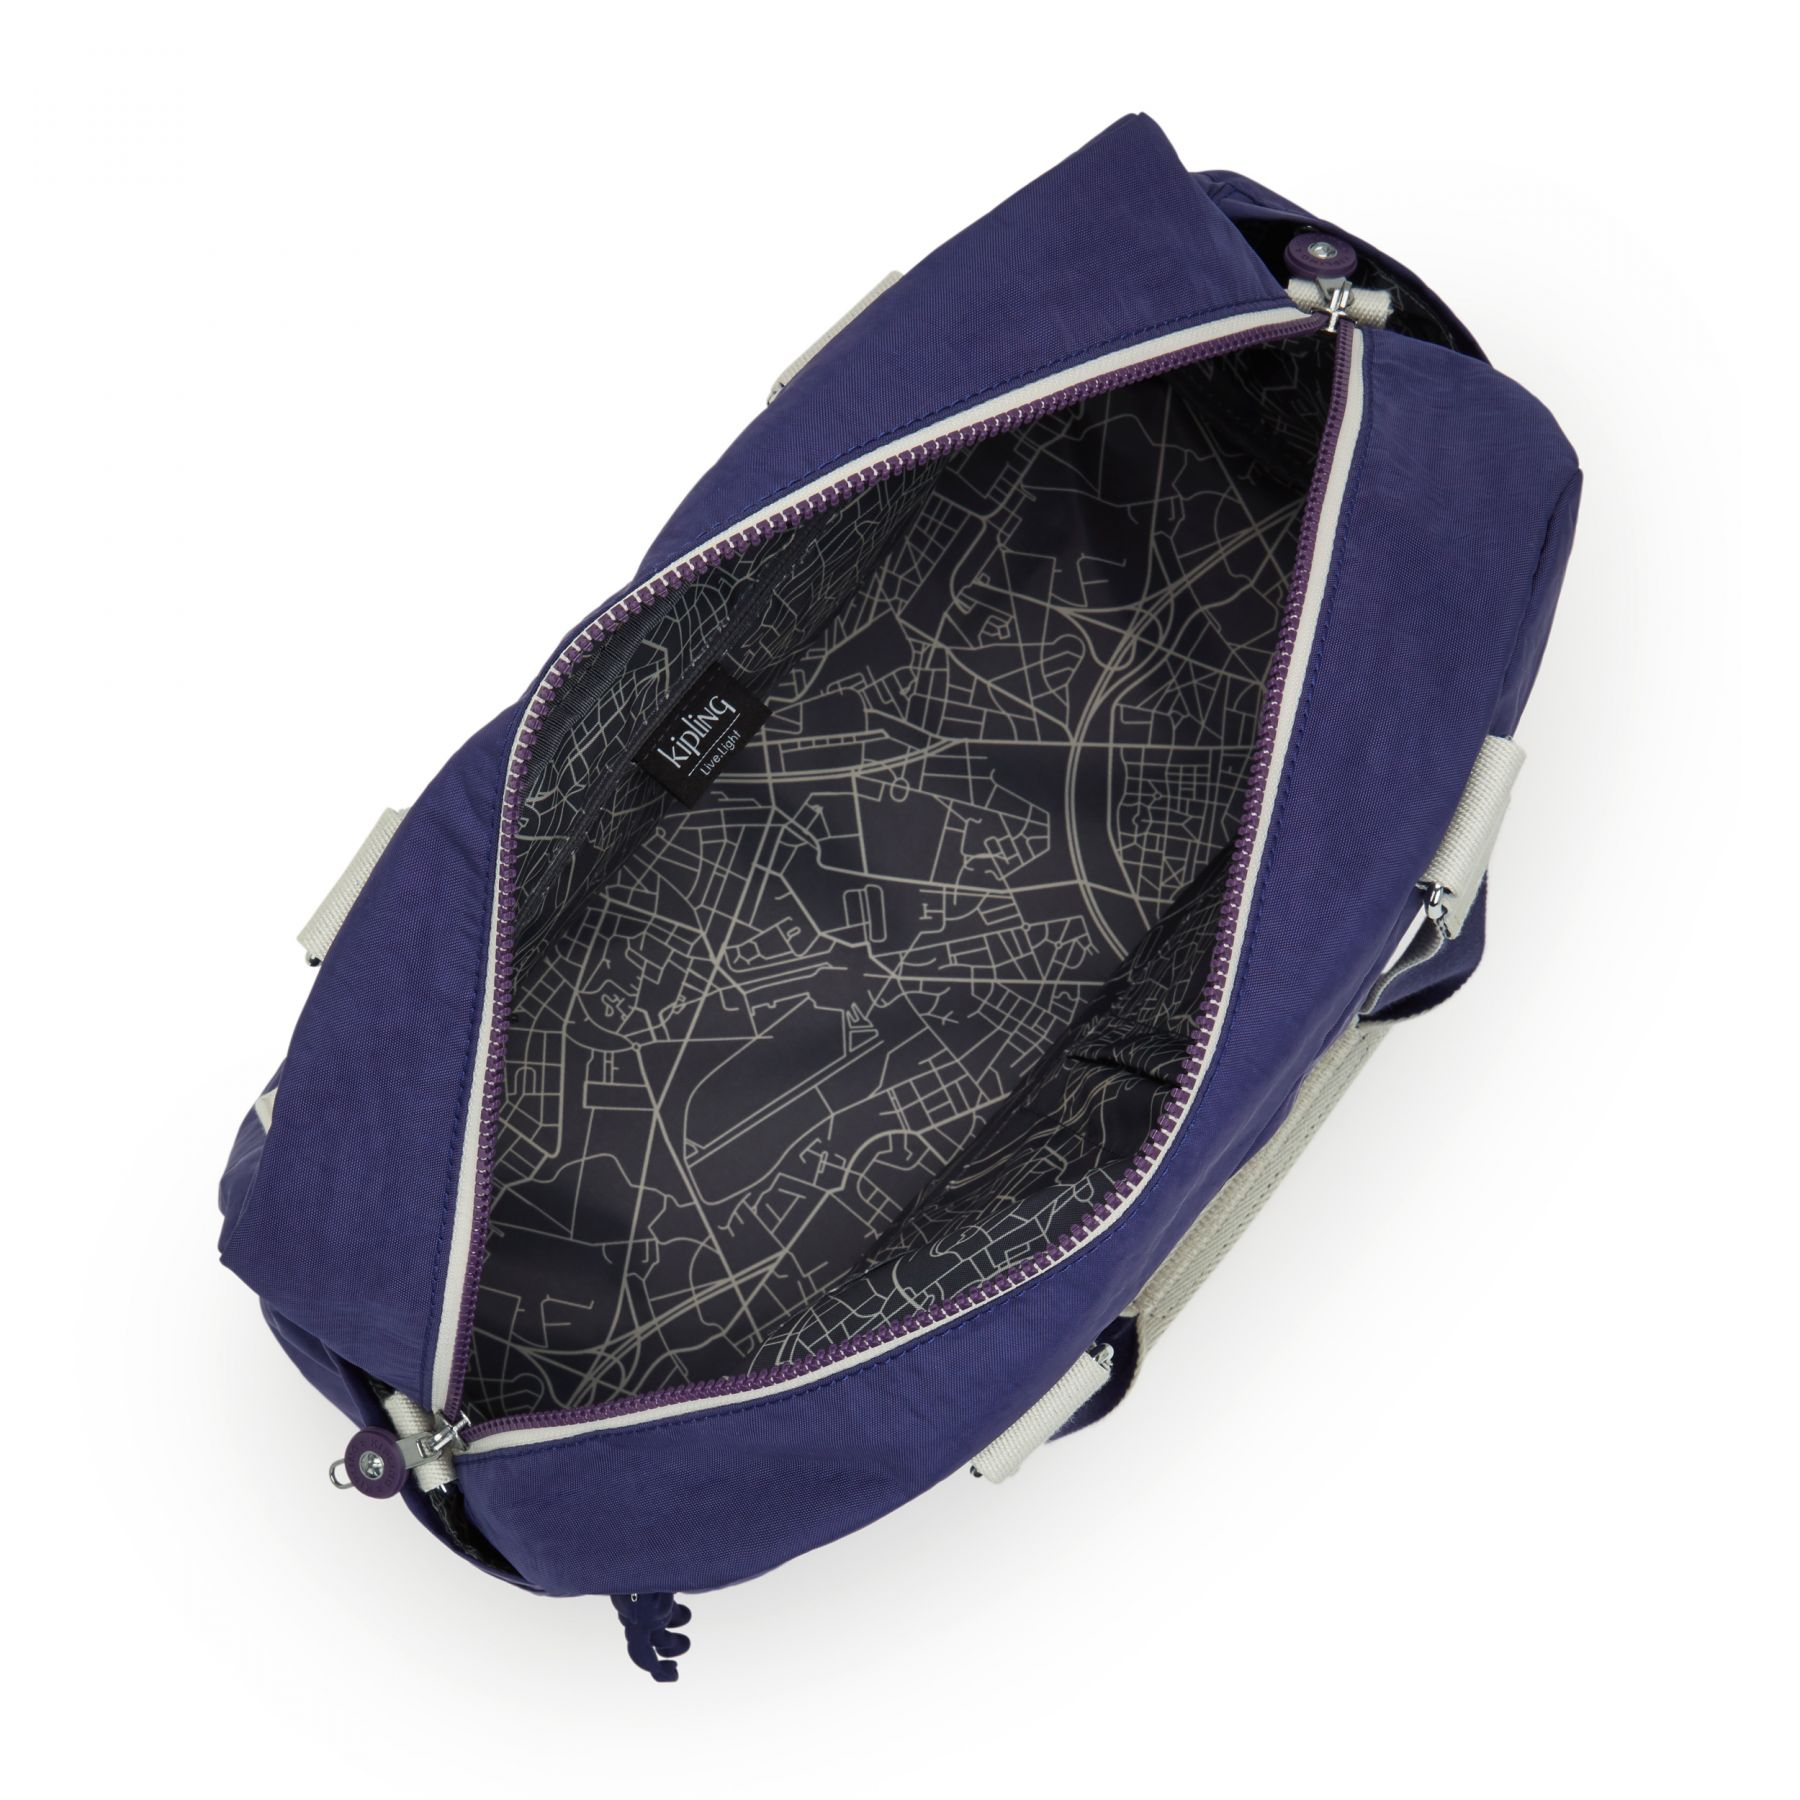 DENY LUGGAGE by Kipling - Inside view